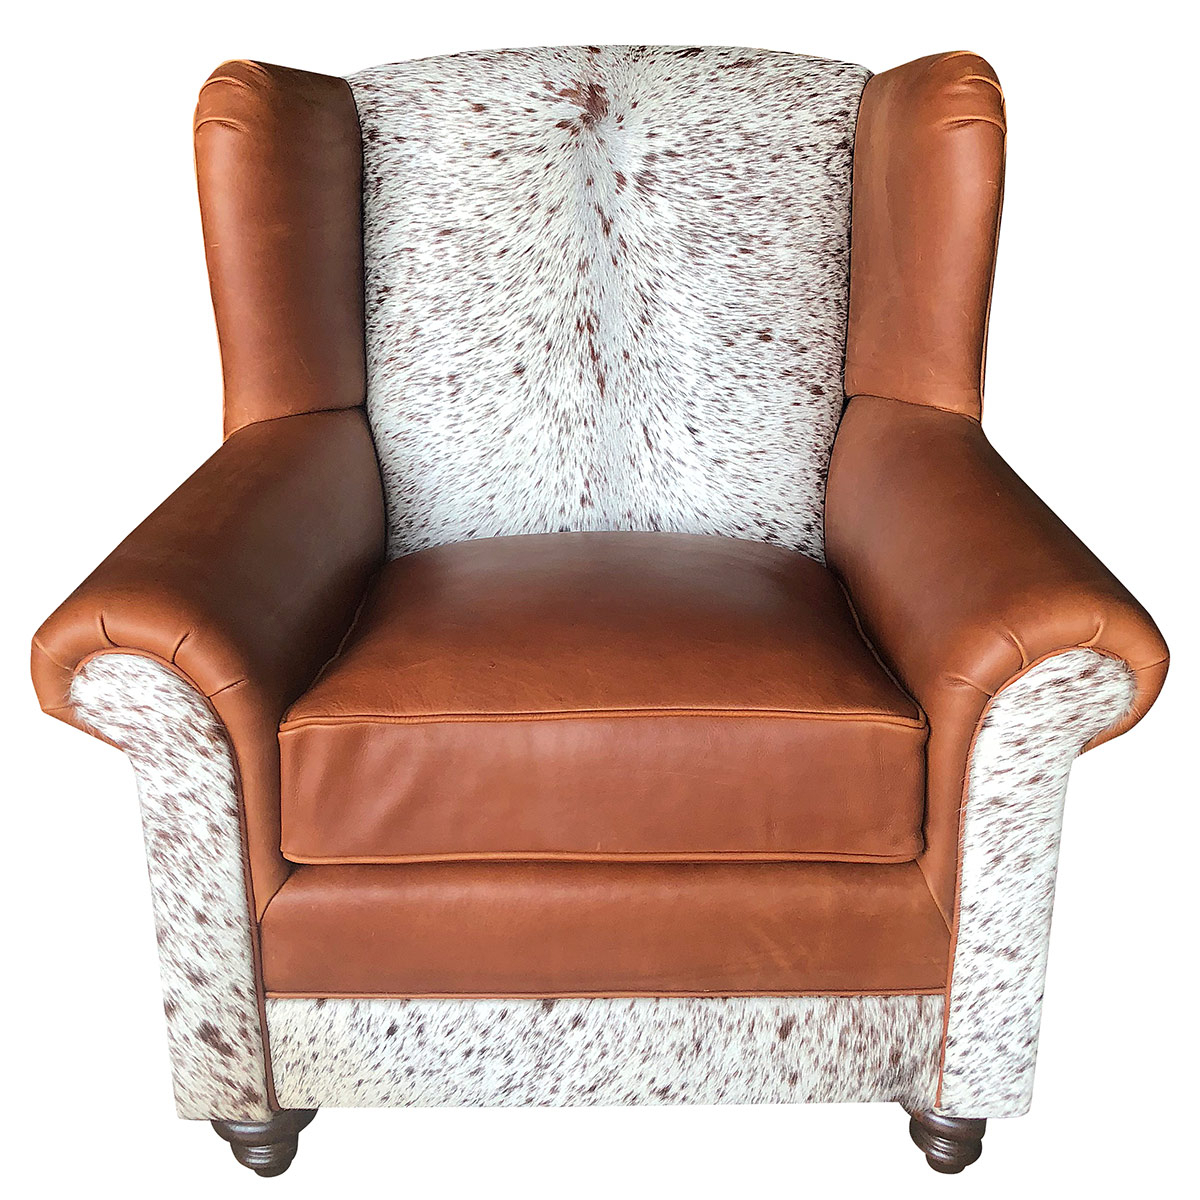 Longhorn Oversized Wingback Chair Throughout Sweetwater Wingback Chairs (View 14 of 15)